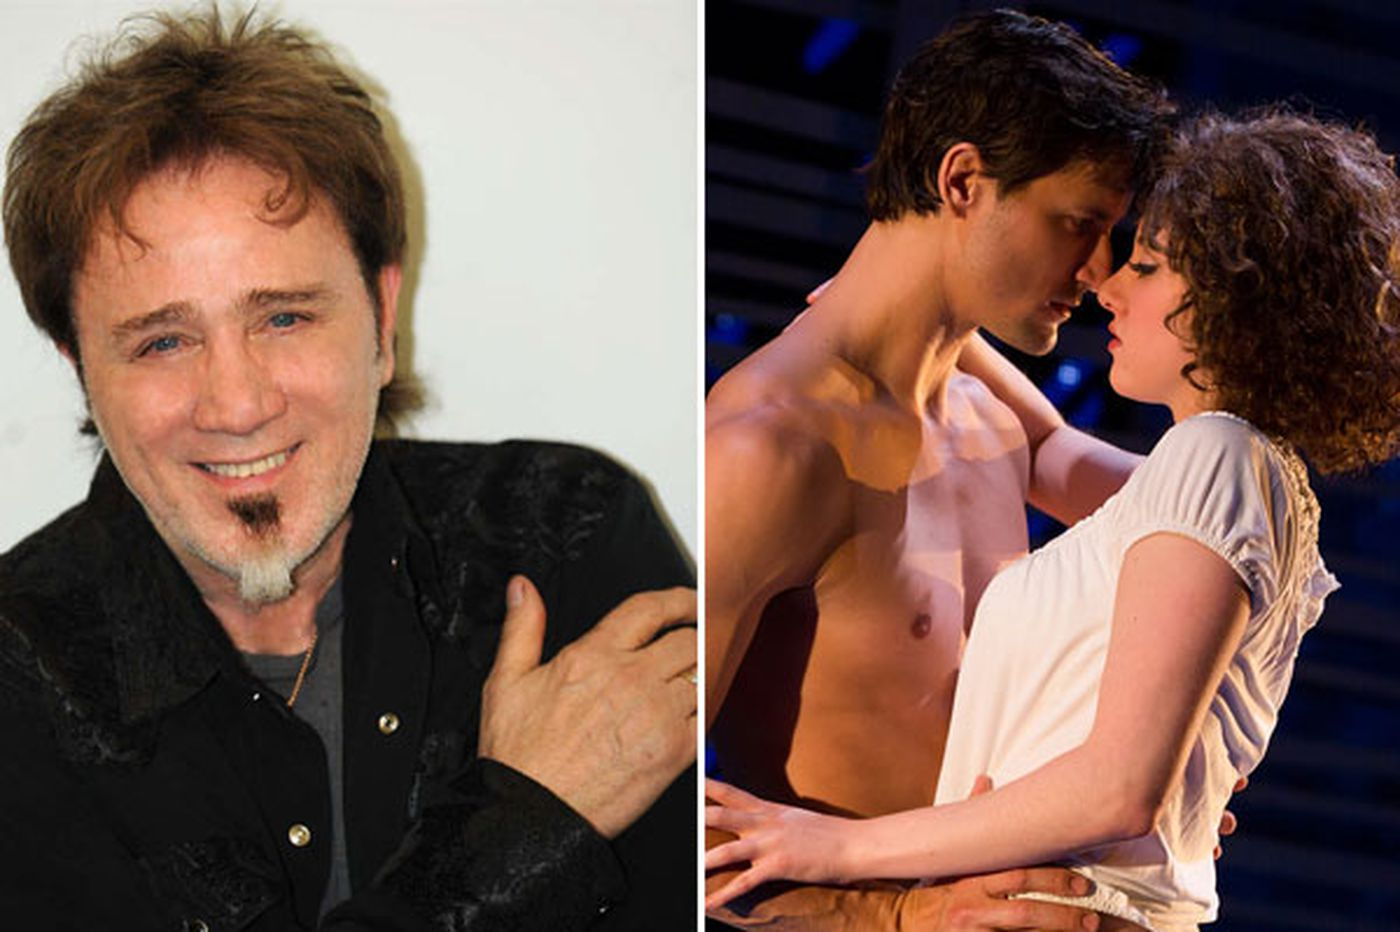 'Dirty Dancing' lyricist tells how he came to write the song of his life